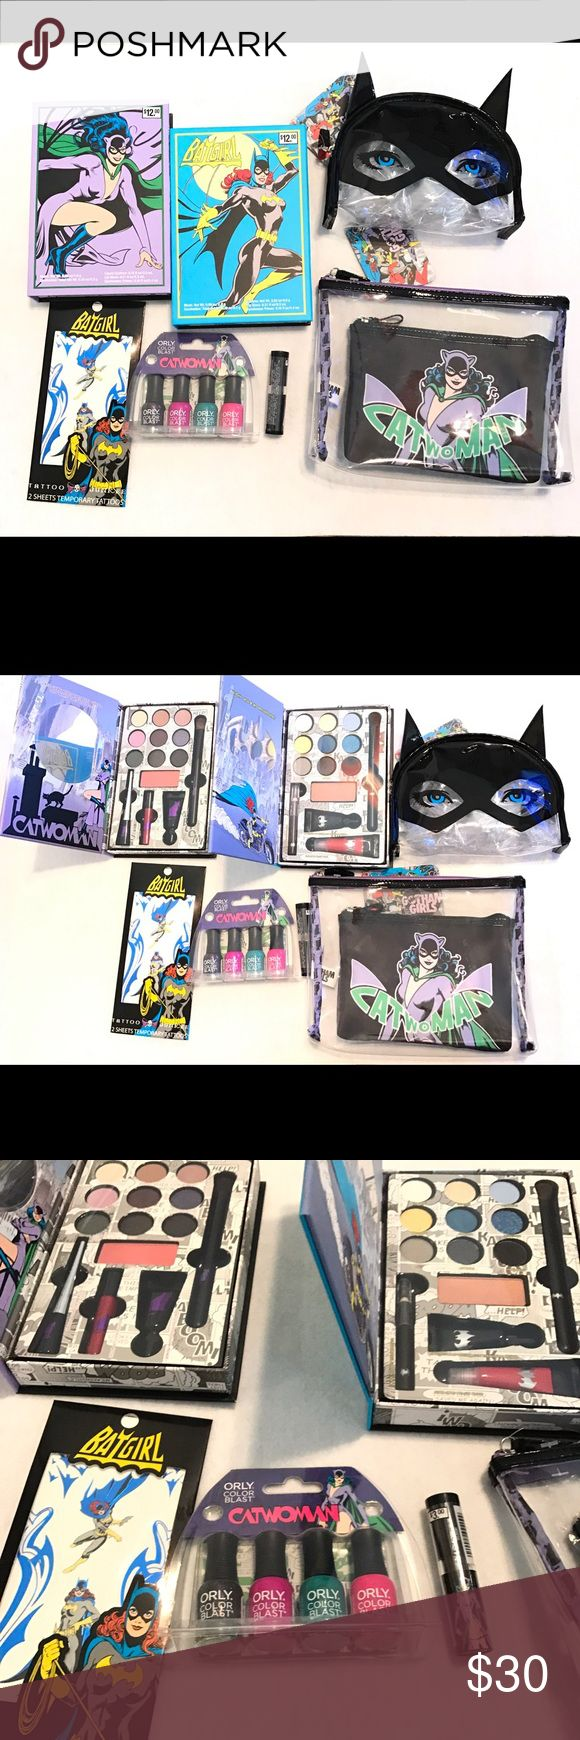 DC Super Hero Makeup set All brand new Cat women, Bat girl makeup sets and bags. Eye shadow, blush, lip gloss palette, orly 4 piece nail polish set, cat women mask makeup bag, cat women makeup bag that's includes two, bat girl lipstick and bat girl tattoos. Great as a Christmas gift or stocking stuffers. Makeup